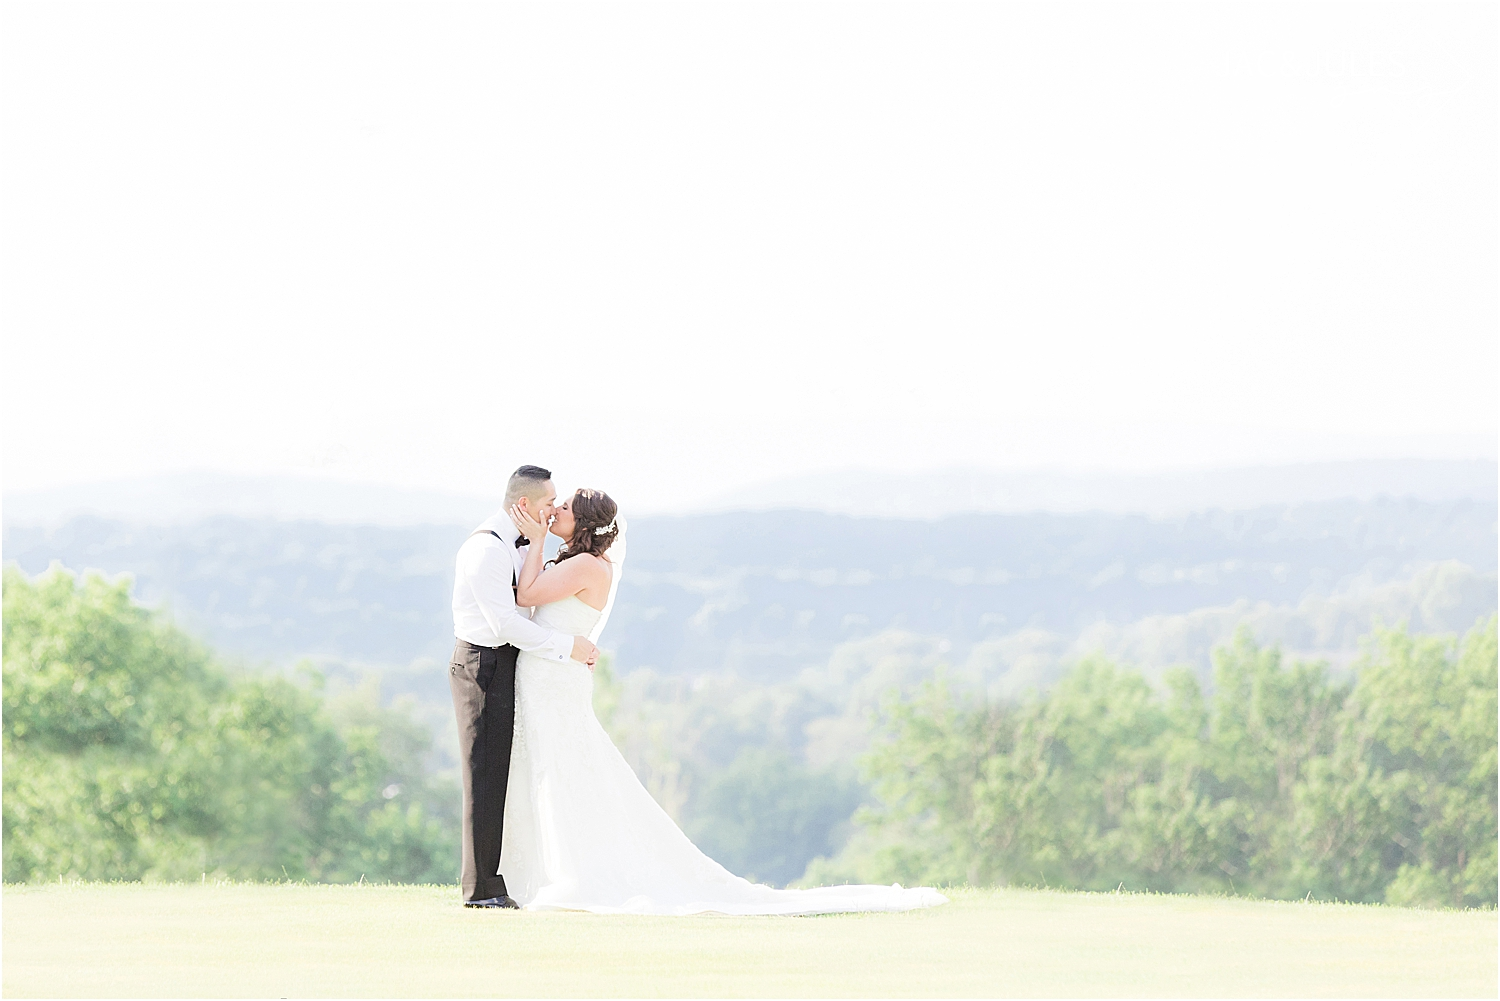 scenic mountain wedding in natural light at Skyview Golf Club